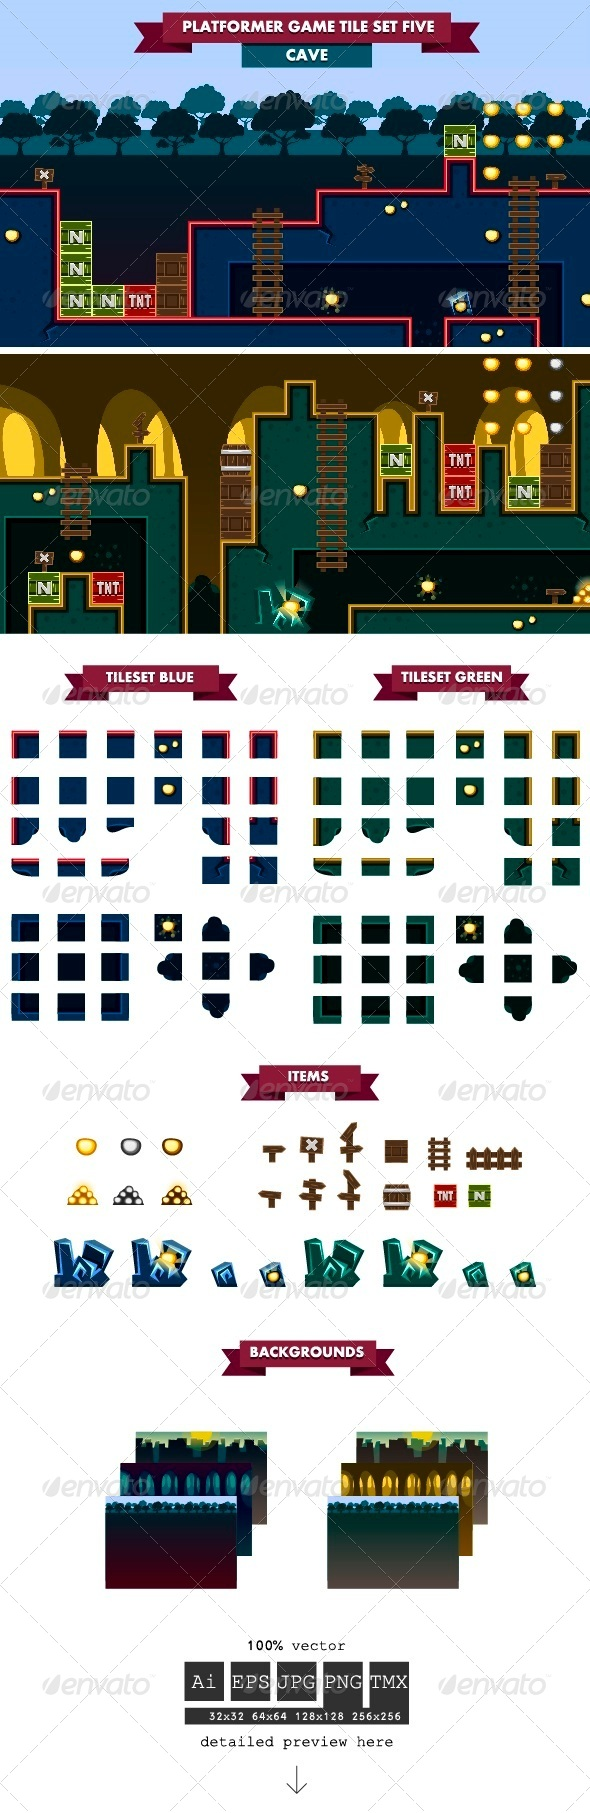 GraphicRiver Platformer Game Tile Set Five 6257141